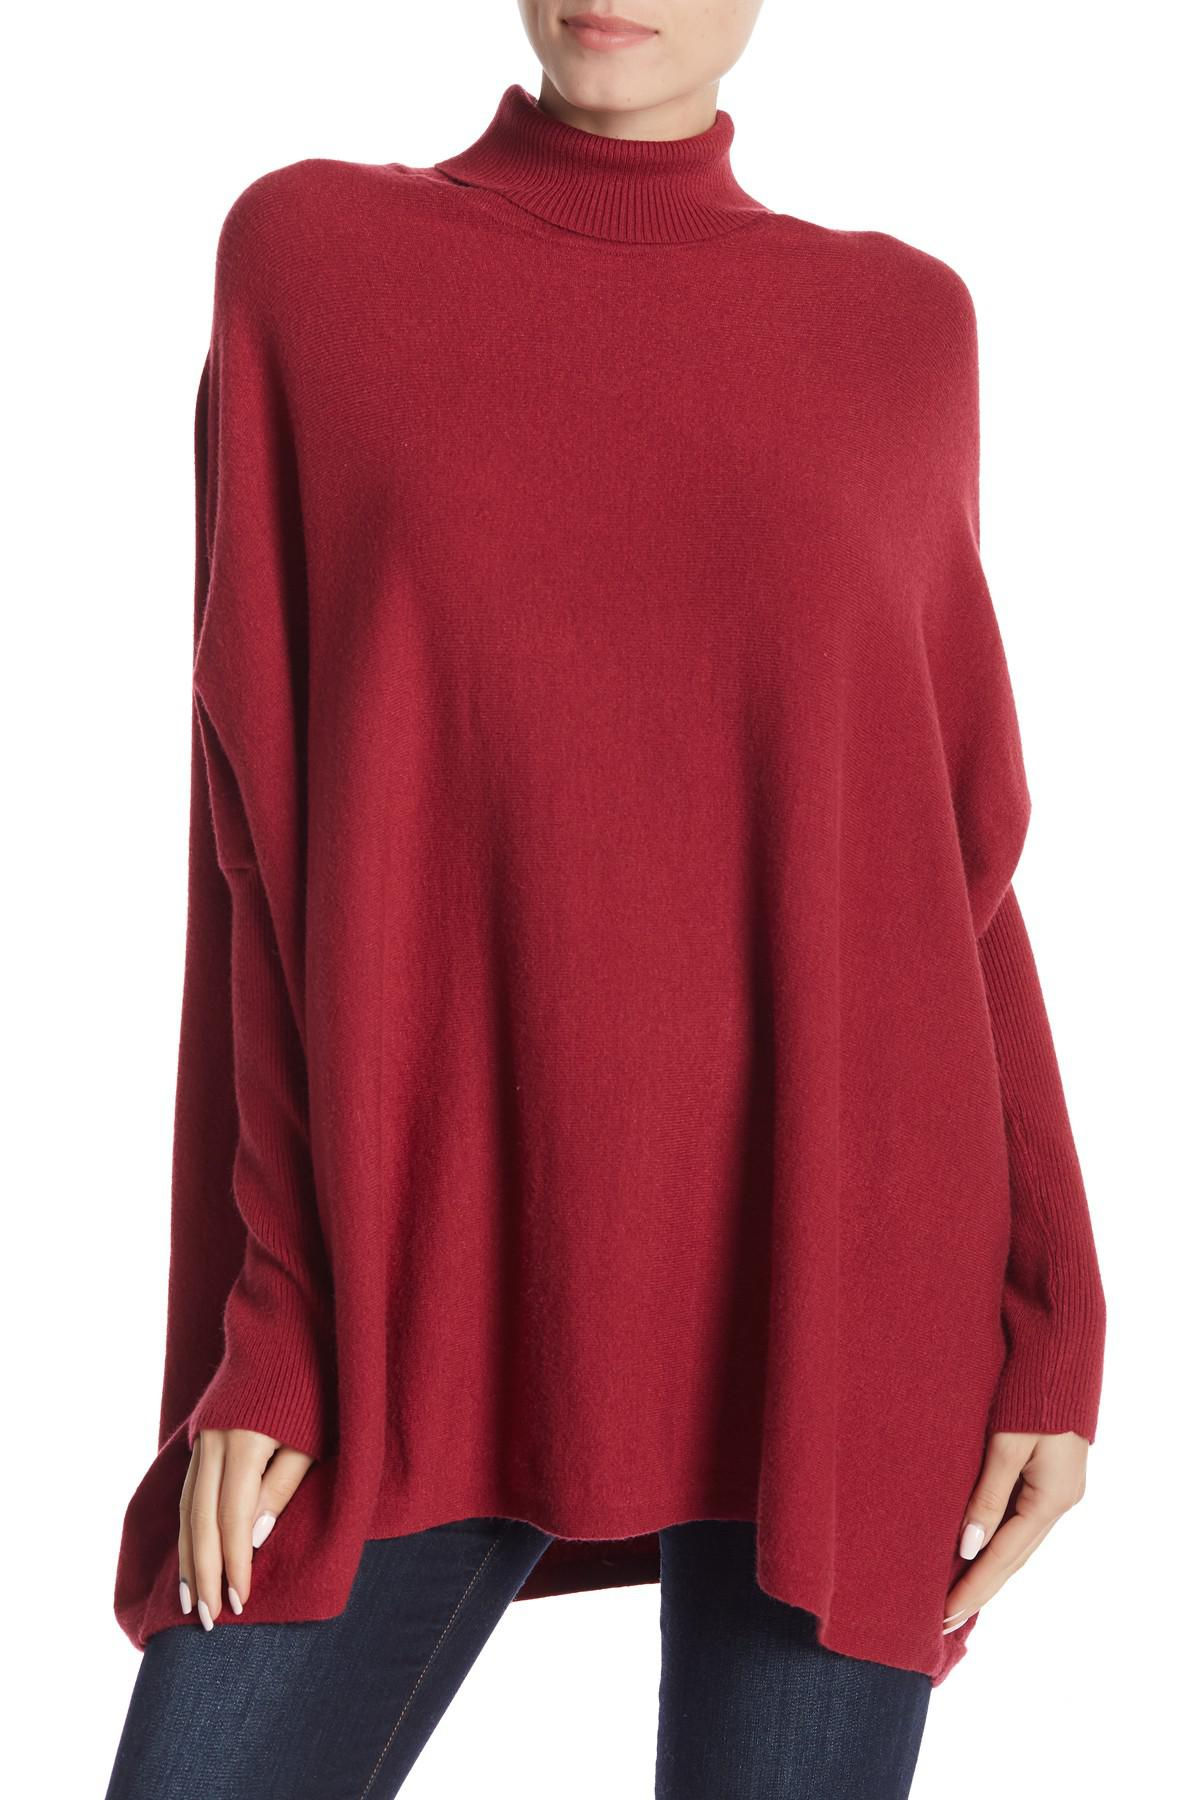 77a7992c3a Lyst - Joseph A Oversized Boxy Long Sleeve Turtleneck Sweater in Red